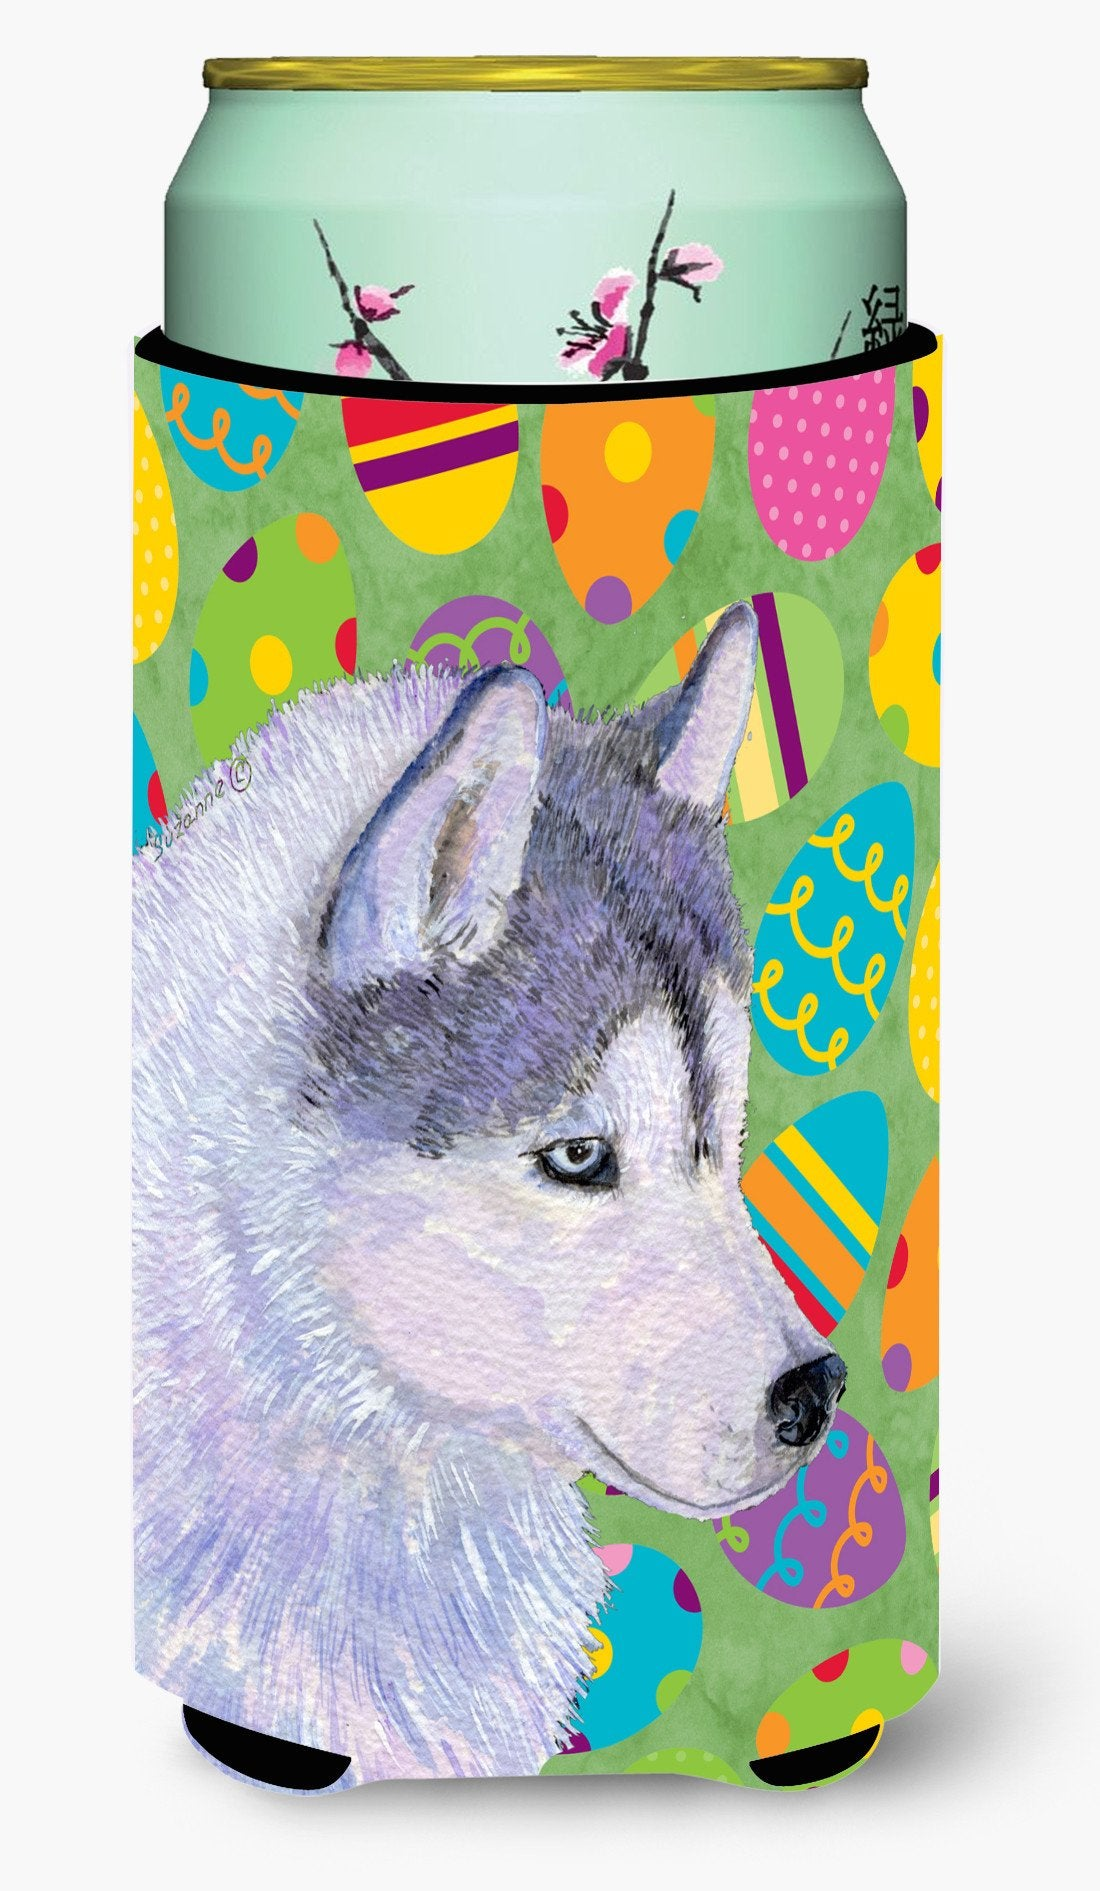 Siberian Husky Easter Eggtravaganza  Tall Boy Beverage Insulator Beverage Insulator Hugger by Caroline's Treasures